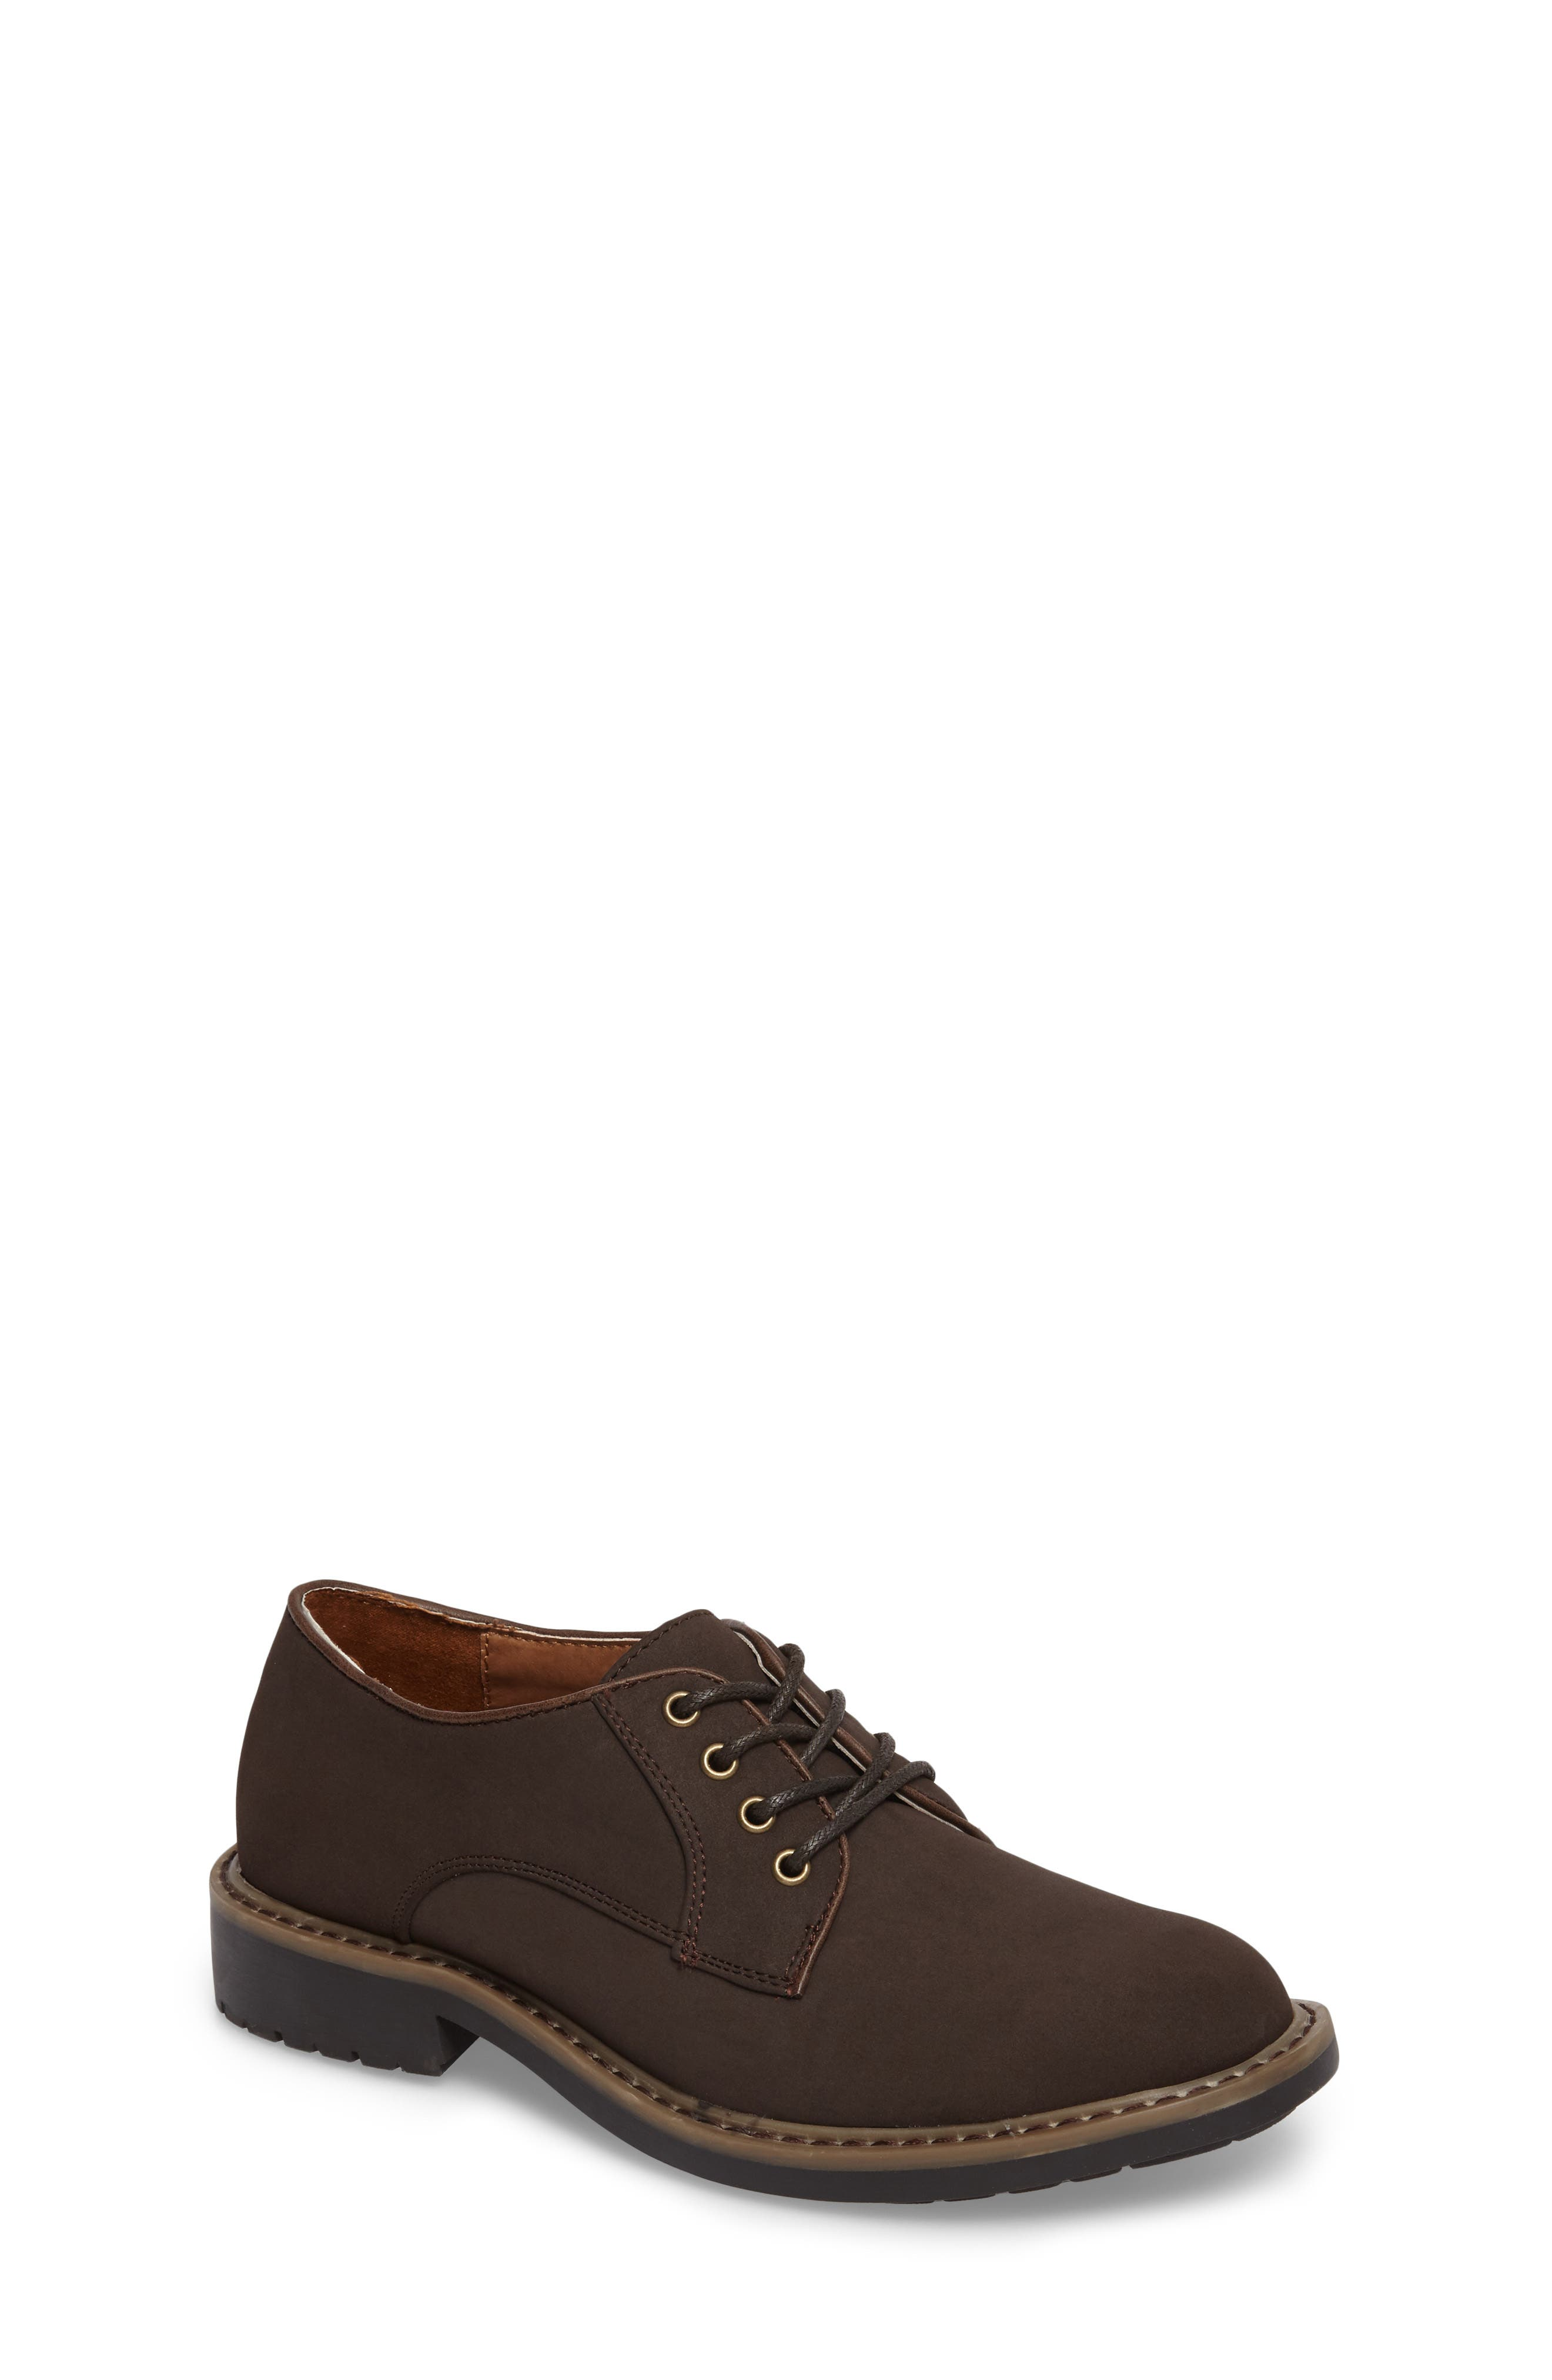 Kenneth Cole New York Take Buck Oxford (Toddler, Little Kid & Big Kid)